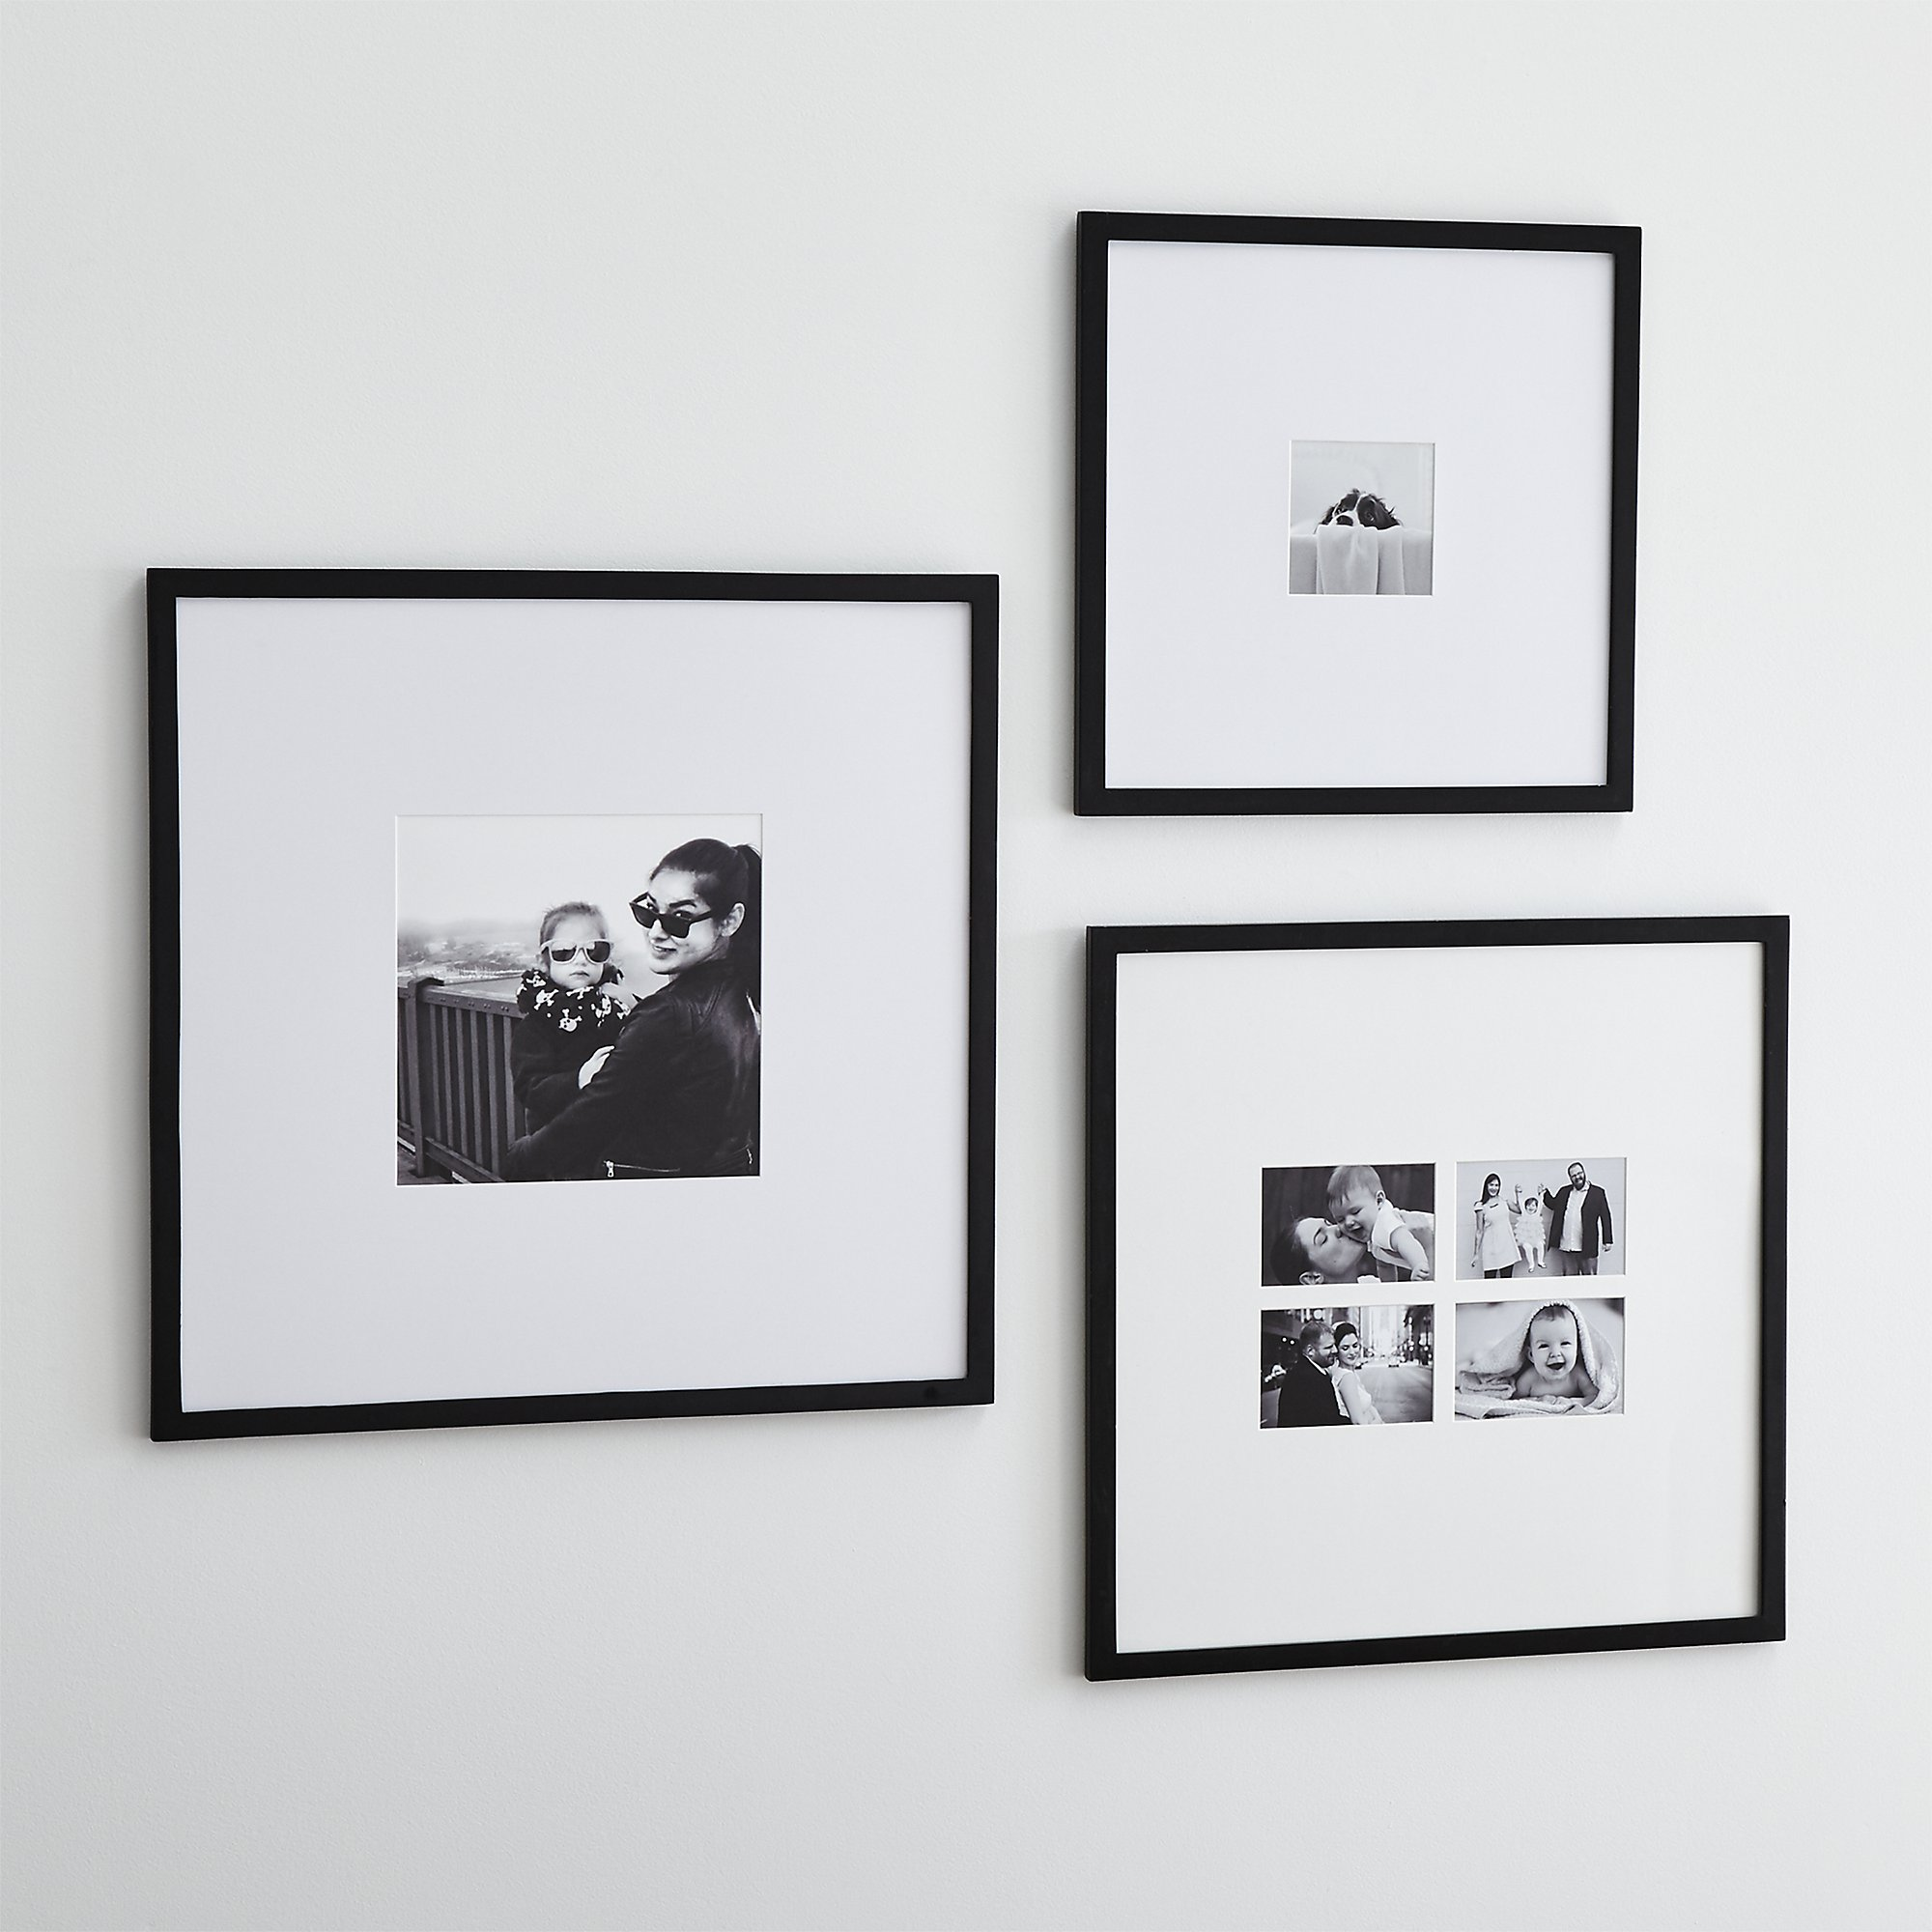 Matte black gallery wall frames from Crate and Barrel wedding registry ideas